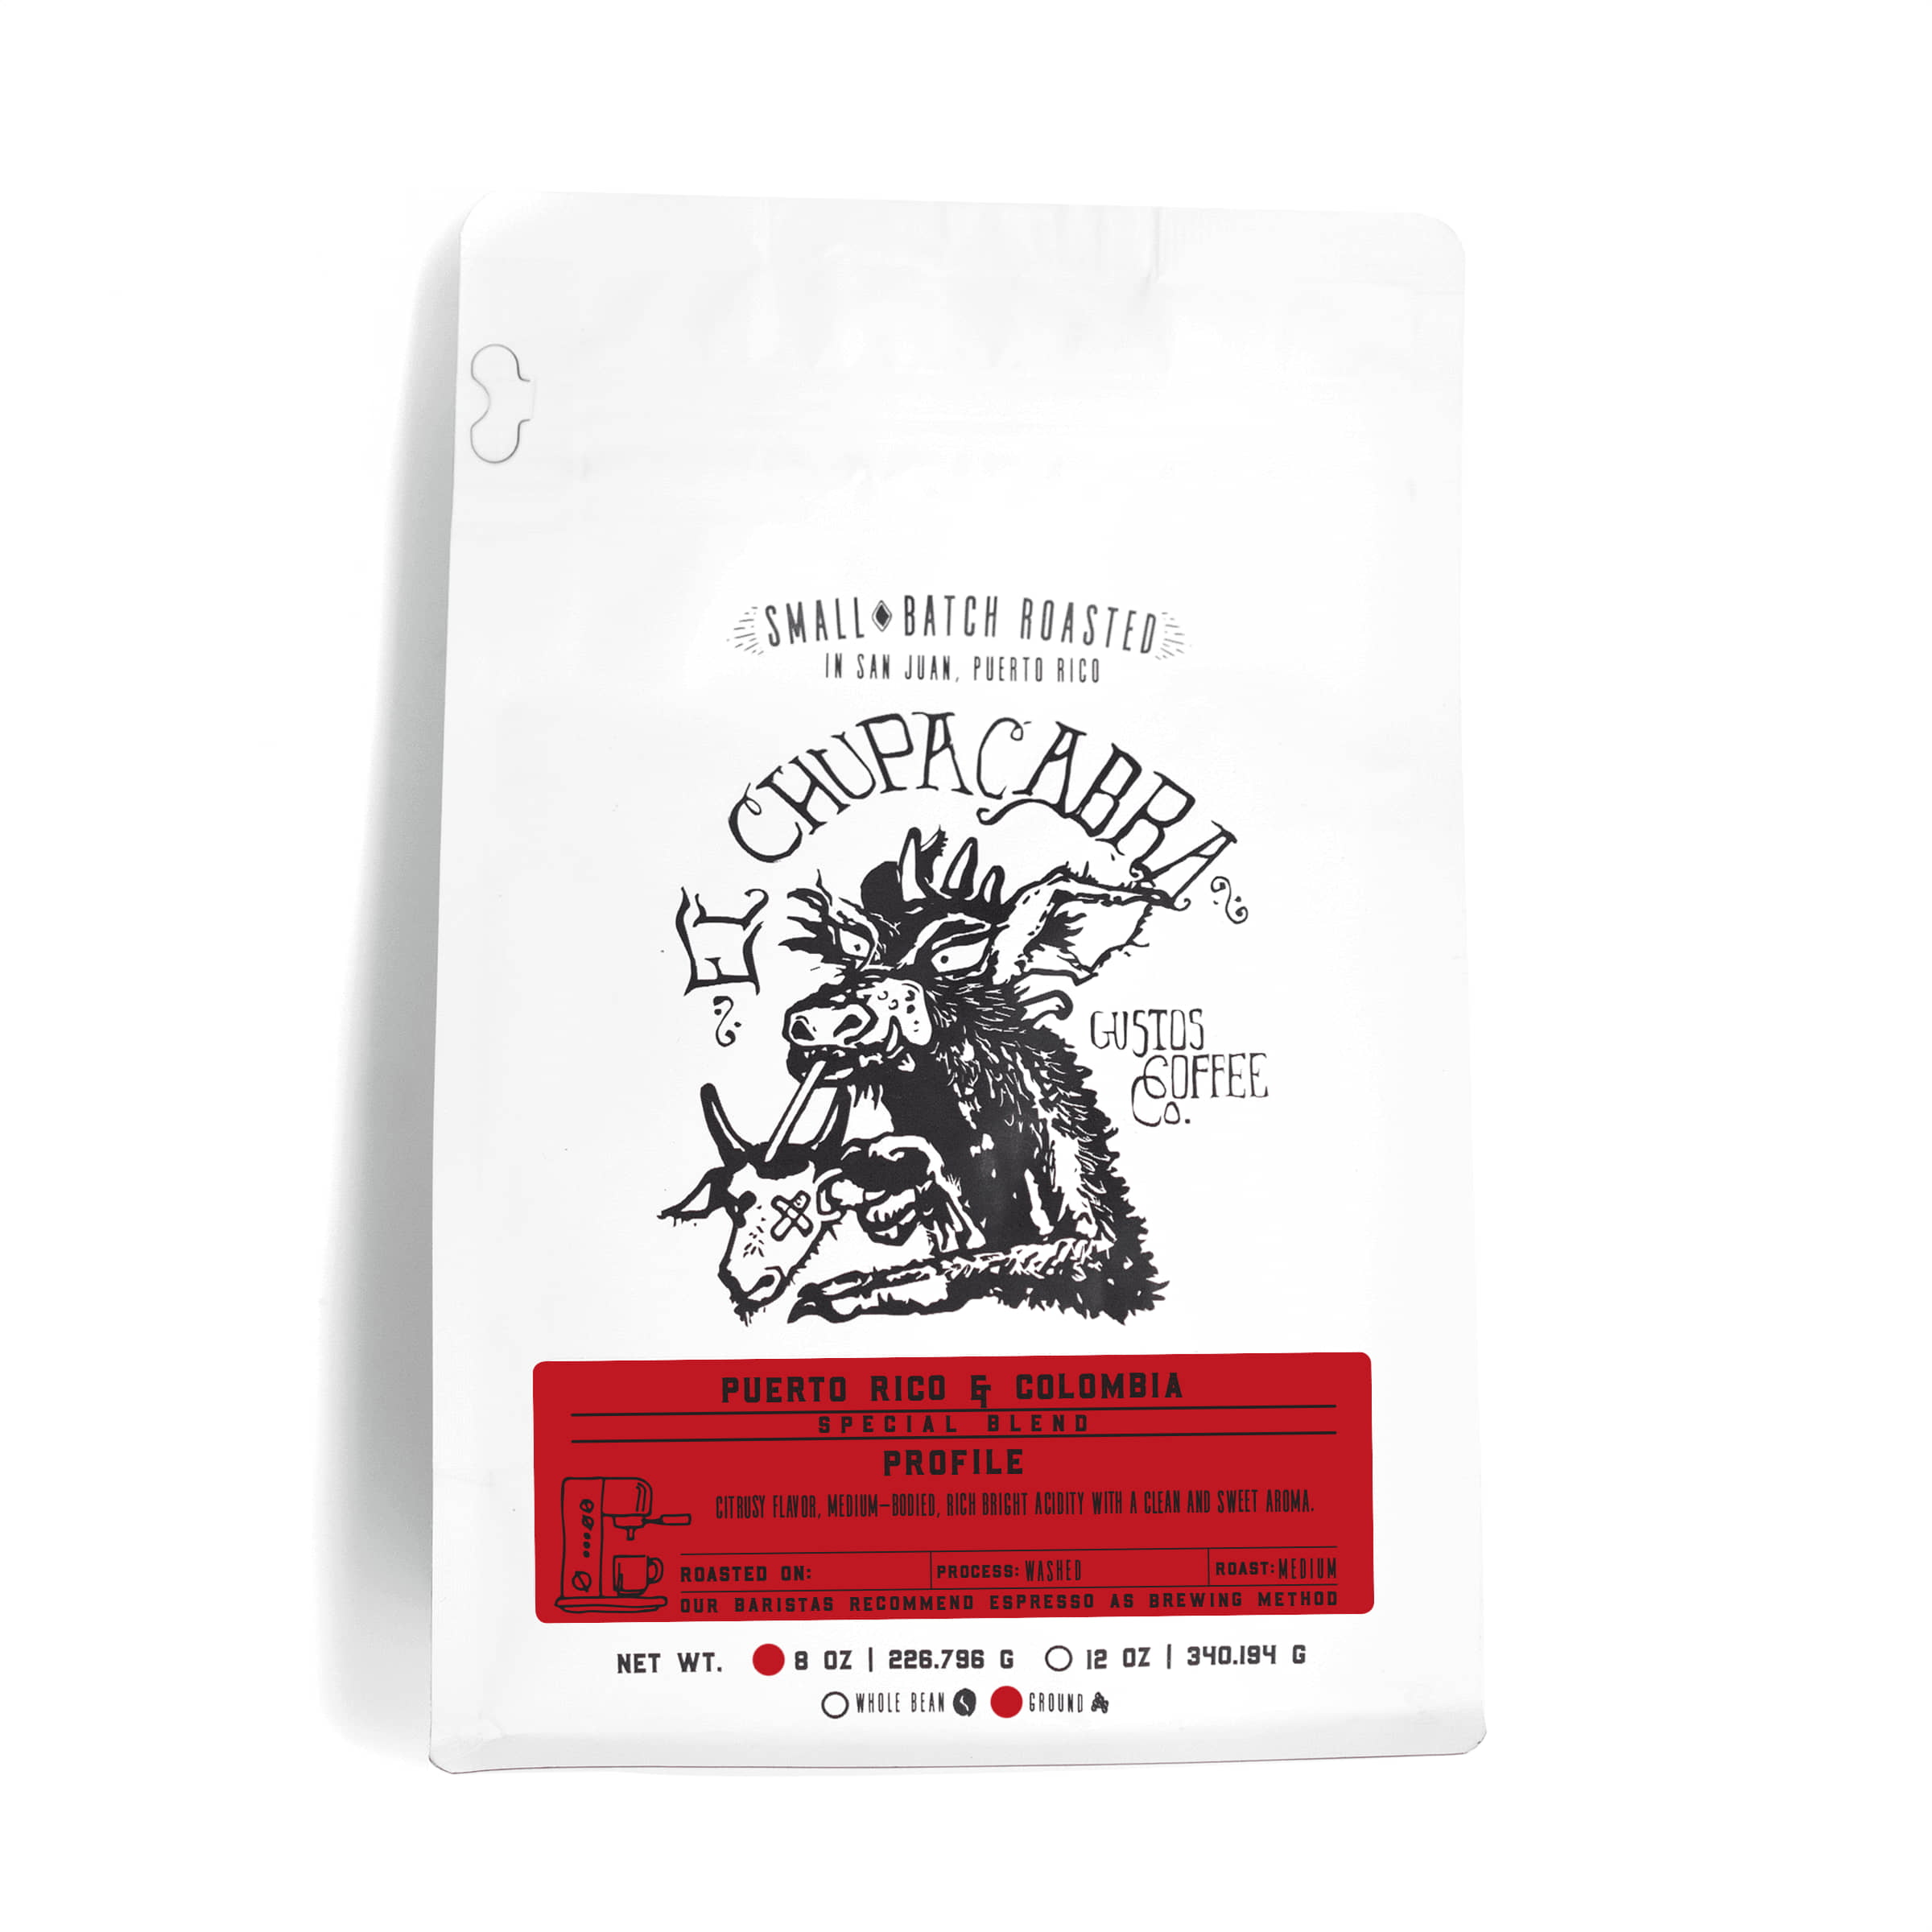 8oz Bag of Fresh Ground Specialty Coffee El Chupacabra Colombia and PR Gustos Café